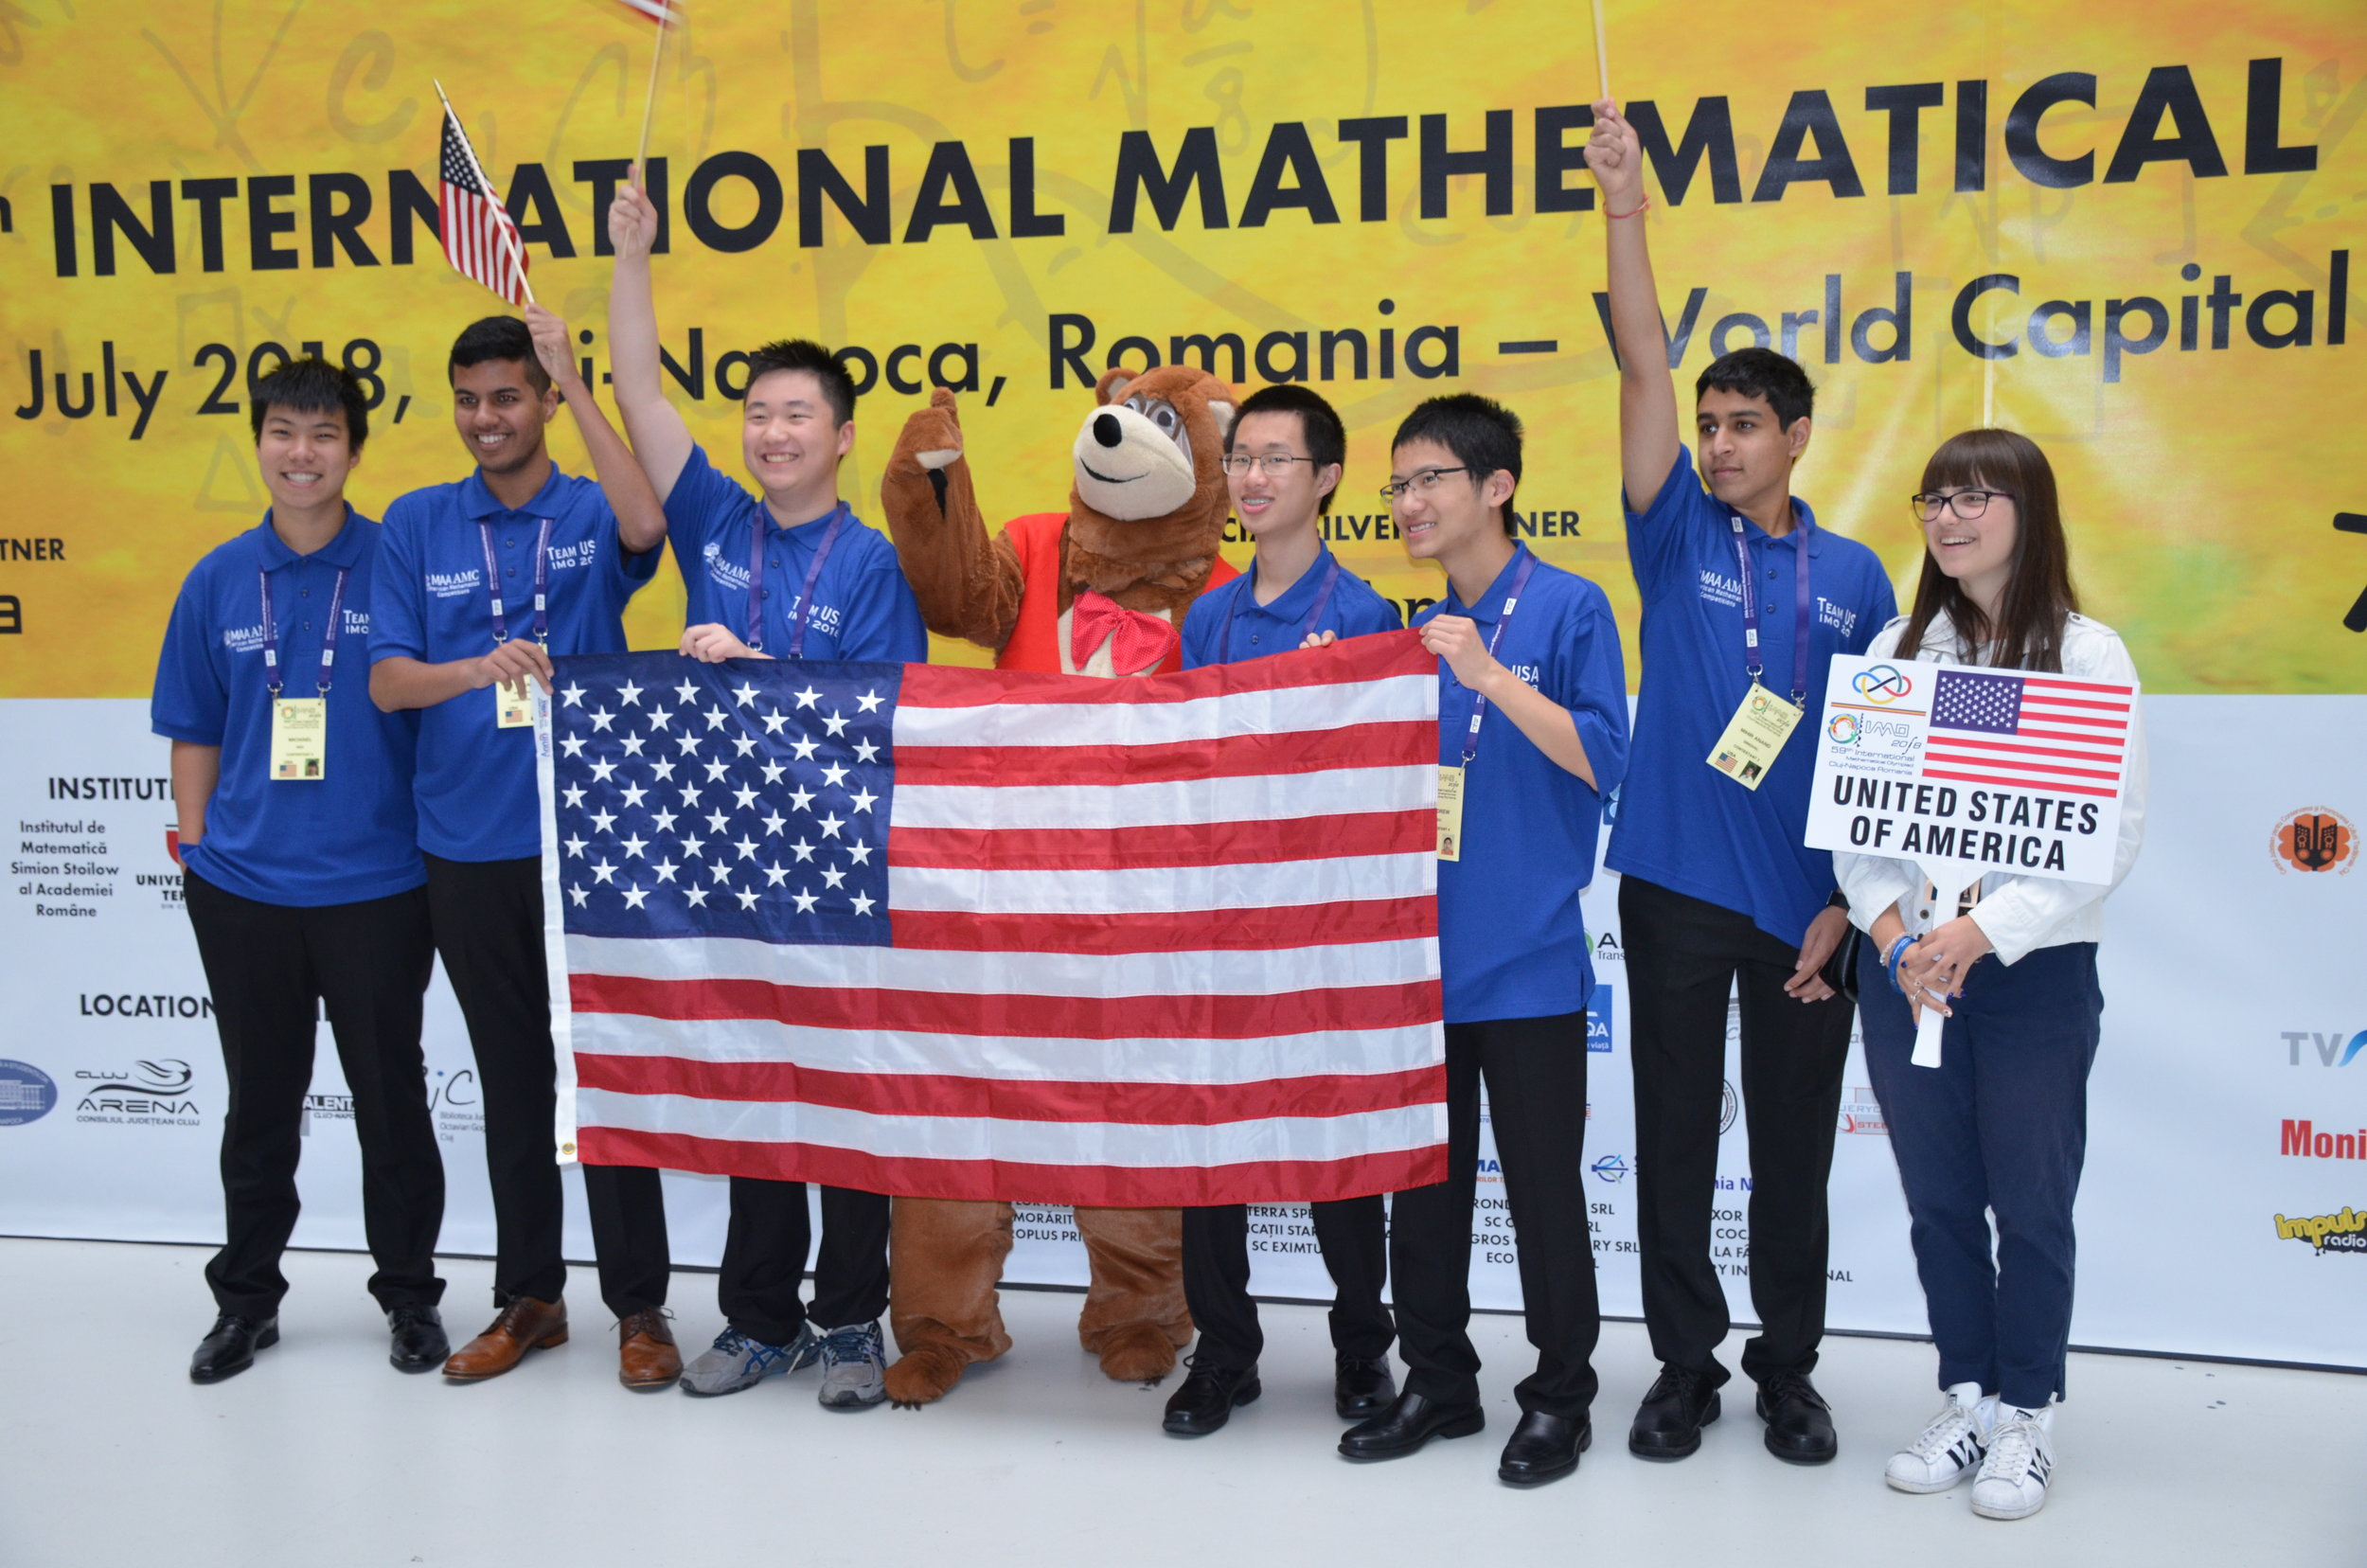 Does Society Need IMO Medalists? A Student's View — MATH VALUES